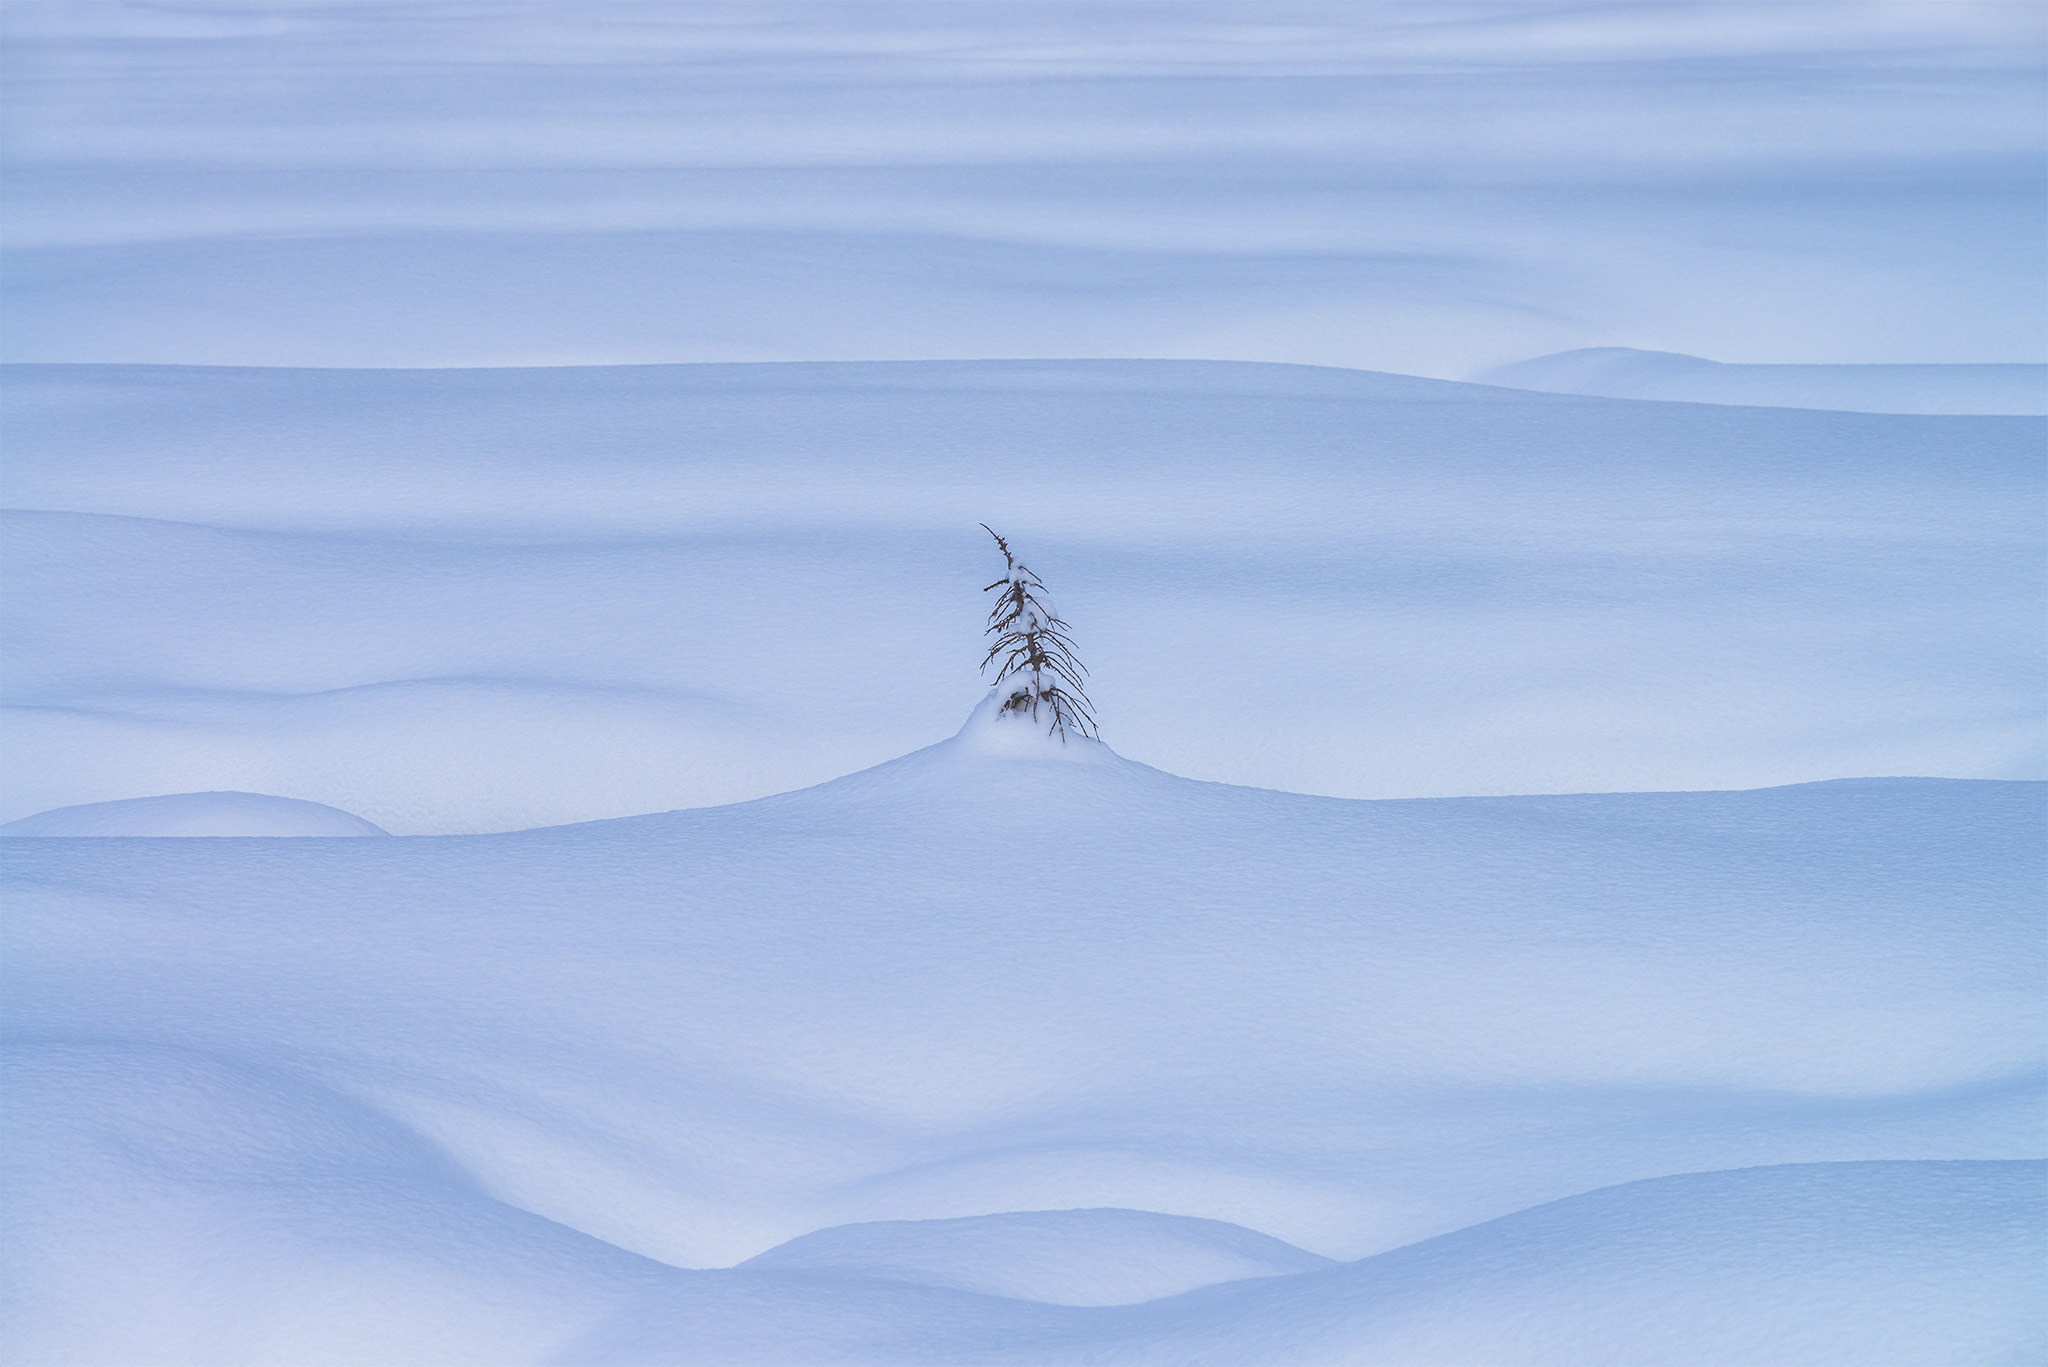 An intimate landscape photograph of a lone tree covered in snow in the Canadian Rockies